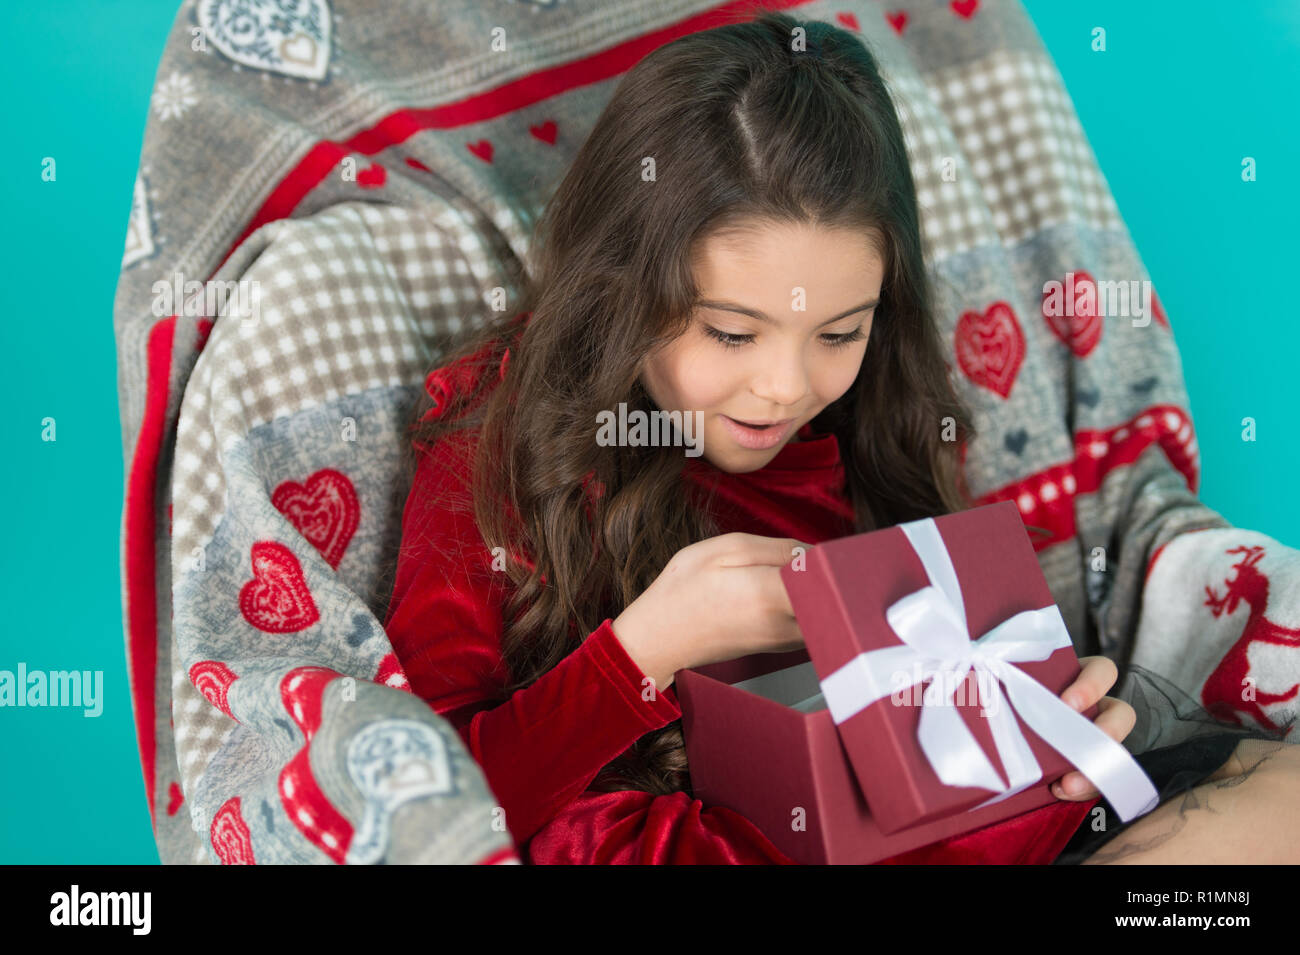 What is inside. Happy little smiling girl open new year gift box. Cute little child girl with new year present. Festive celebration of the New Year Eve at home. Merry Christmas and Happy New Year. - Stock Image